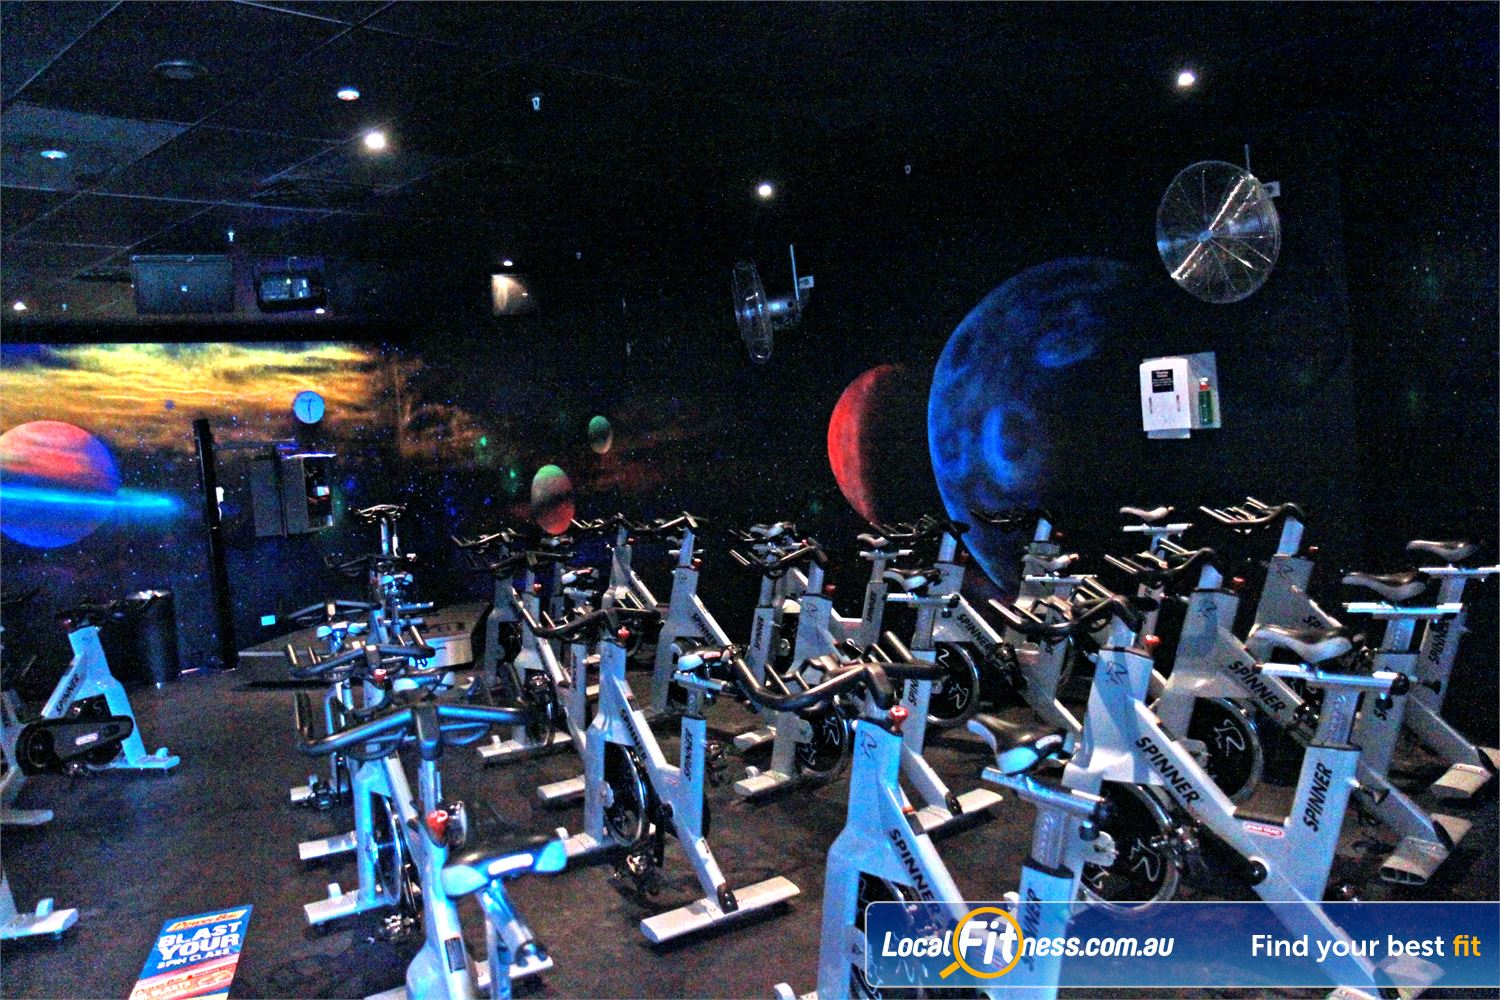 Goodlife Health Clubs Subiaco Goodlife Subiaco includes our signature Cosmic spin cycle classes.